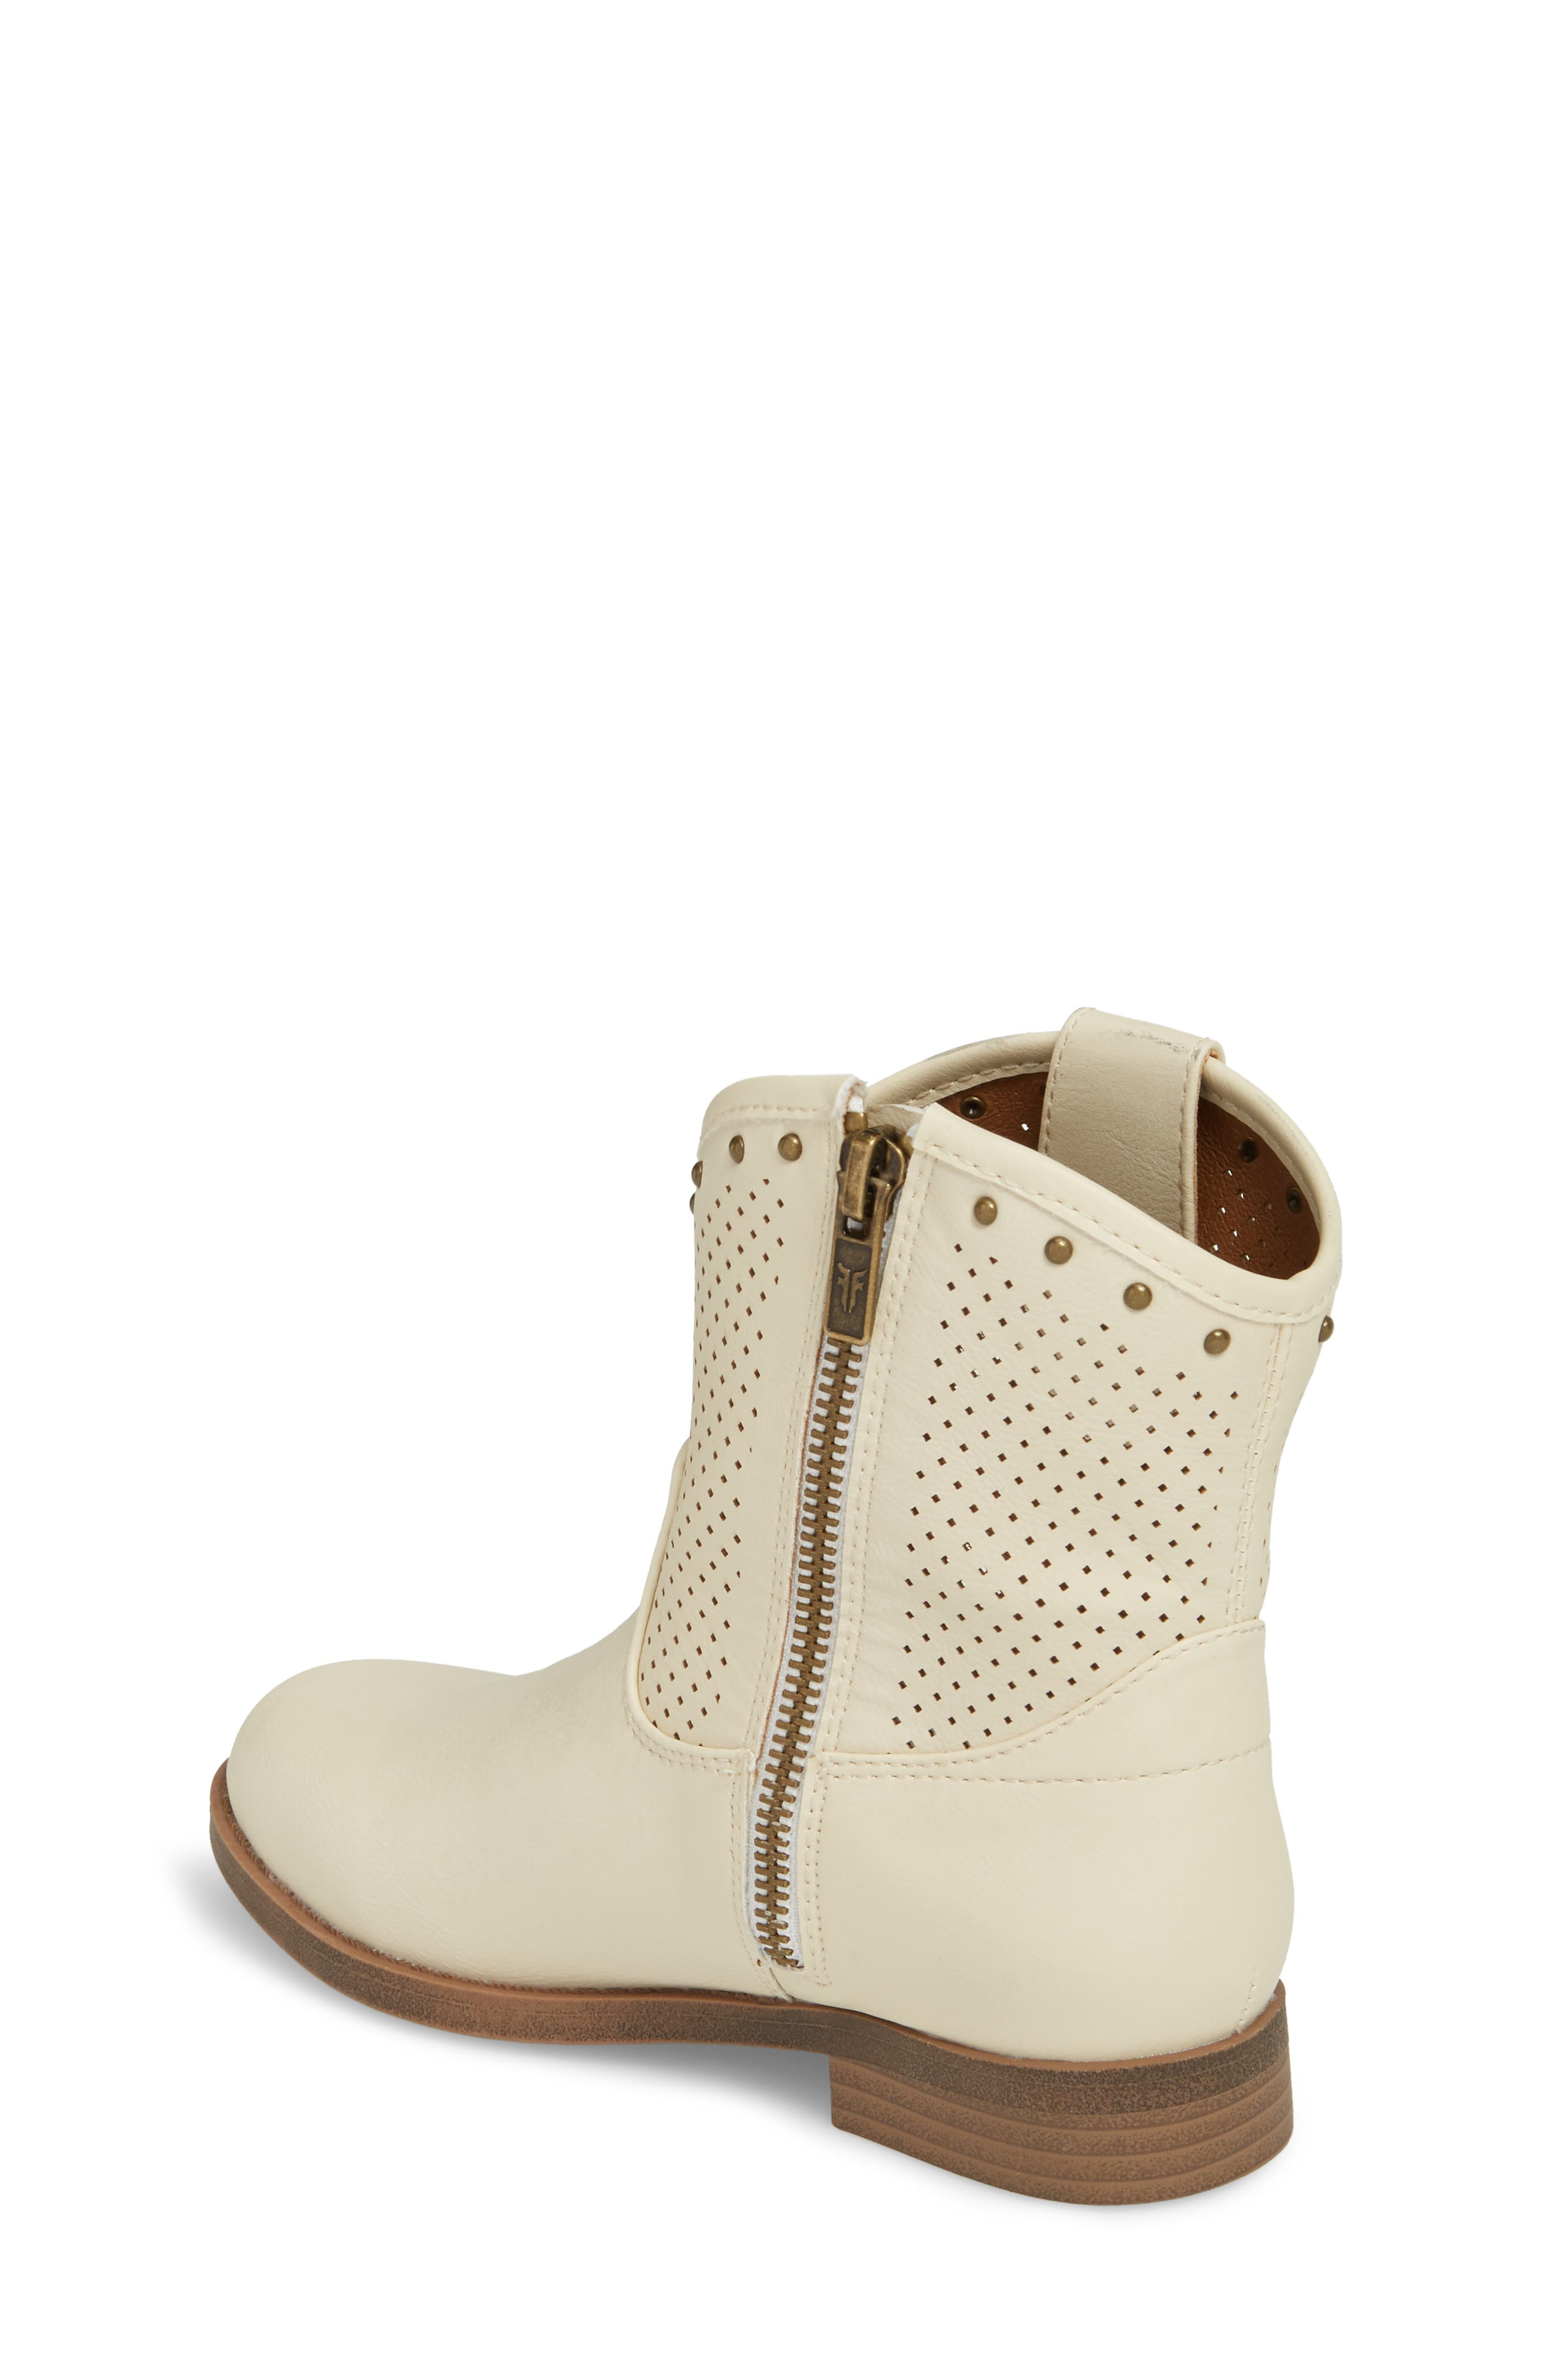 Melissa Perforated Button Boot,                             Alternate thumbnail 2, color,                             100